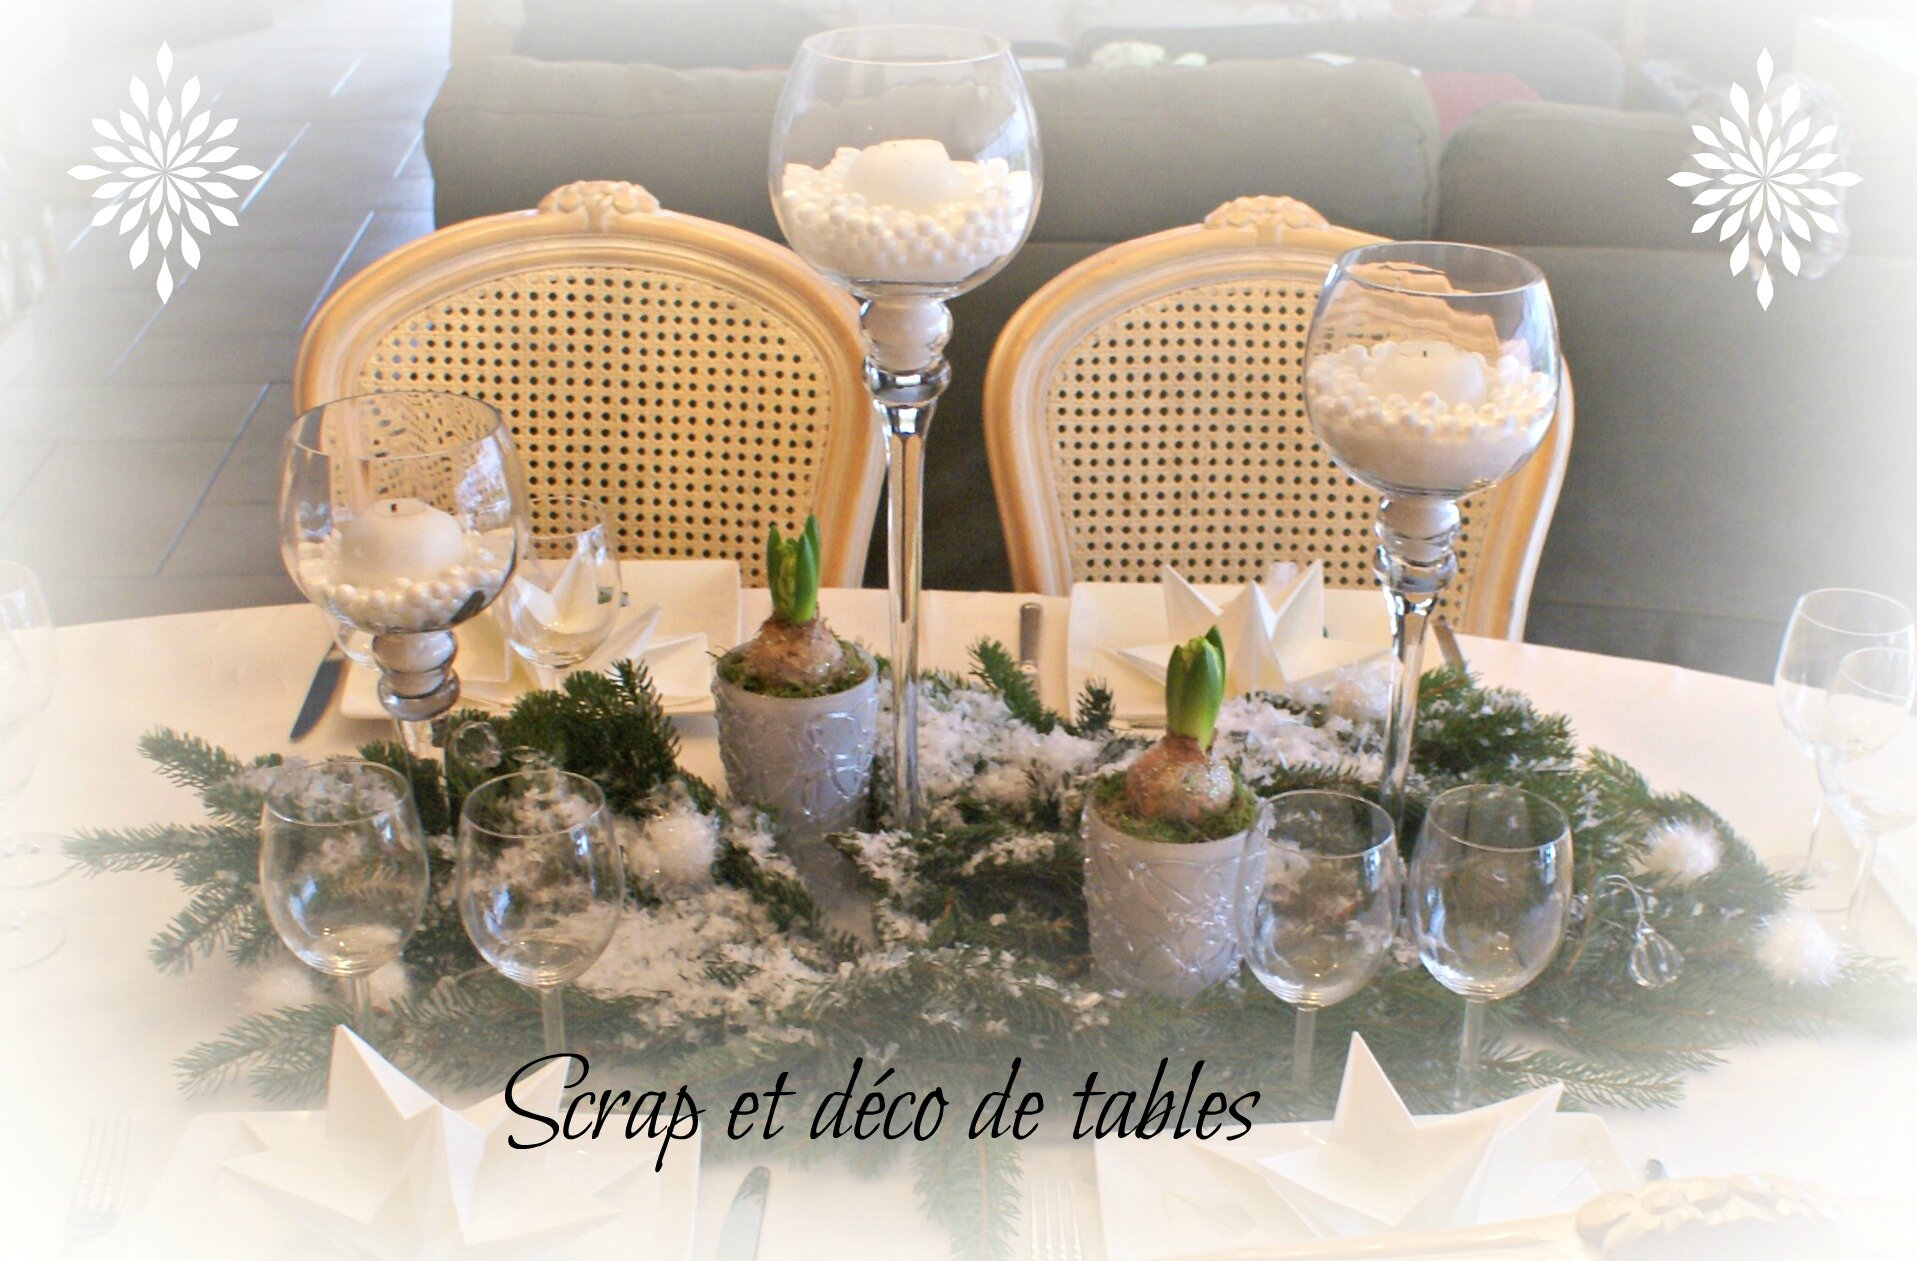 #956536 DECO TABLE DE NOËL EN BLANC Scrap Et Déco De Tables 6185 Decoration De Table De Noel En Scrap 1917x1261 px @ aertt.com